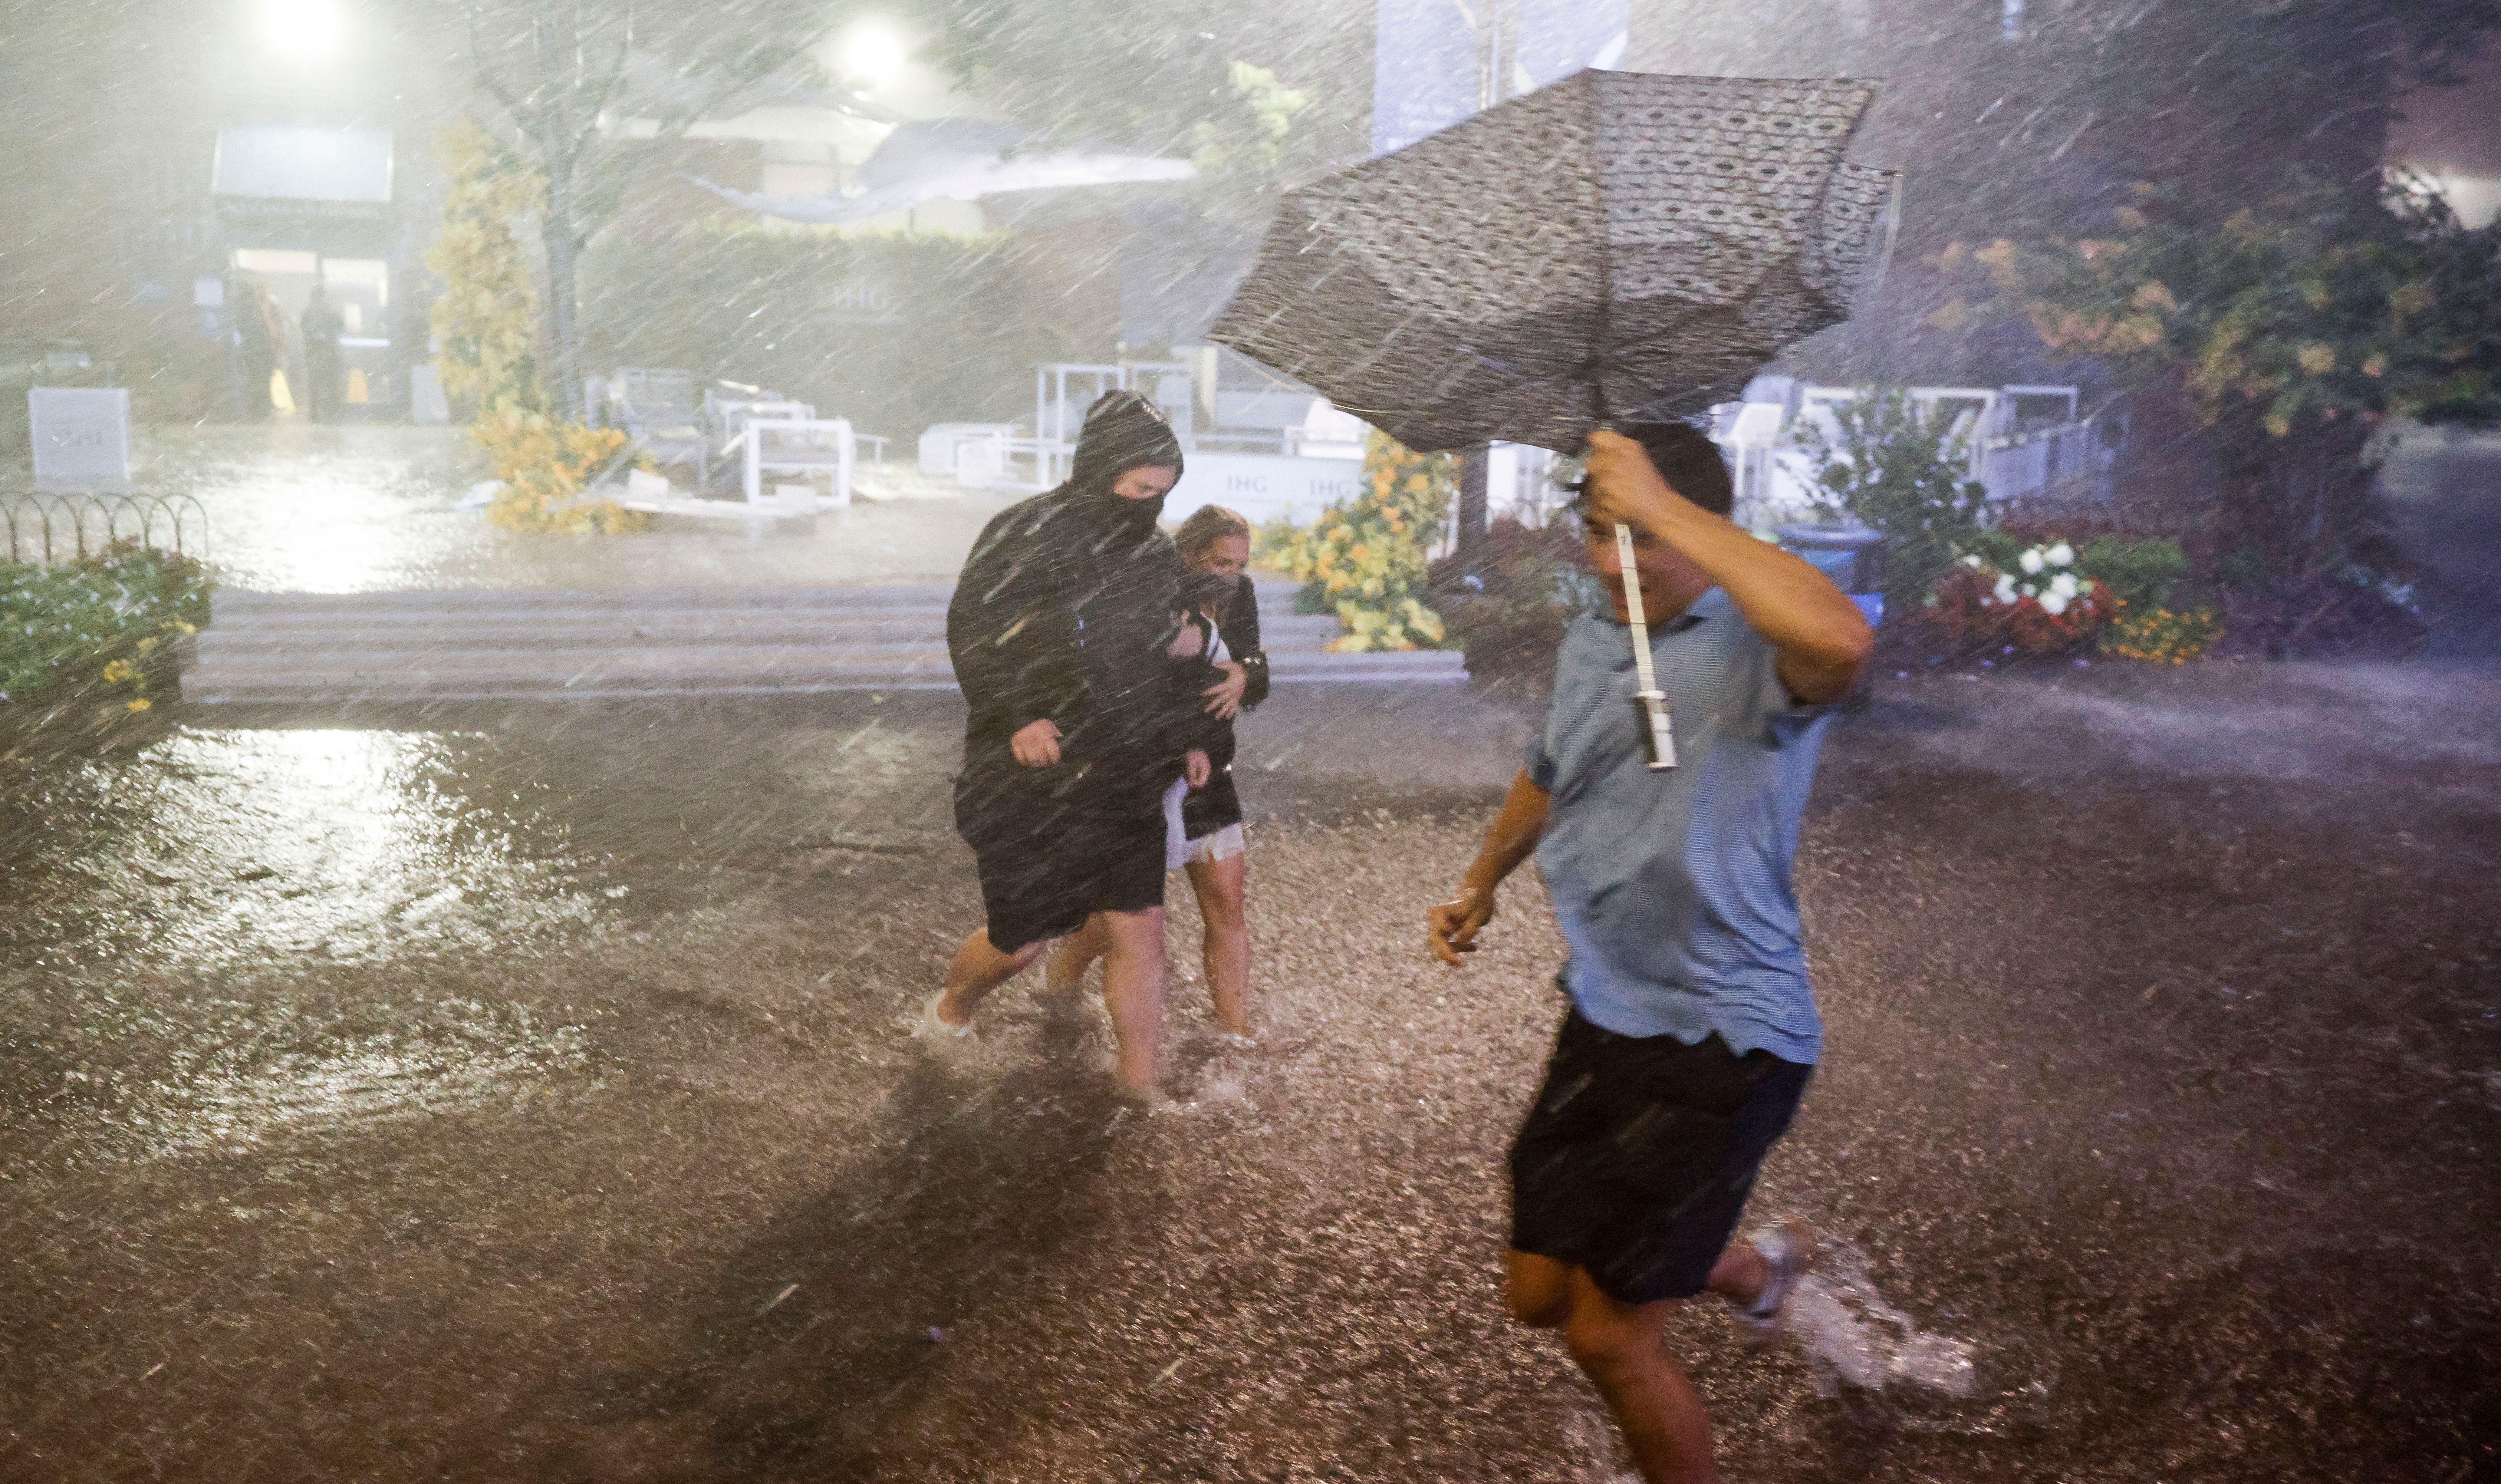 People navigate heavy rains and flooded walkways at the Billie Jean King National Tennis Center as the remnants of Hurricane Ida hit the area.